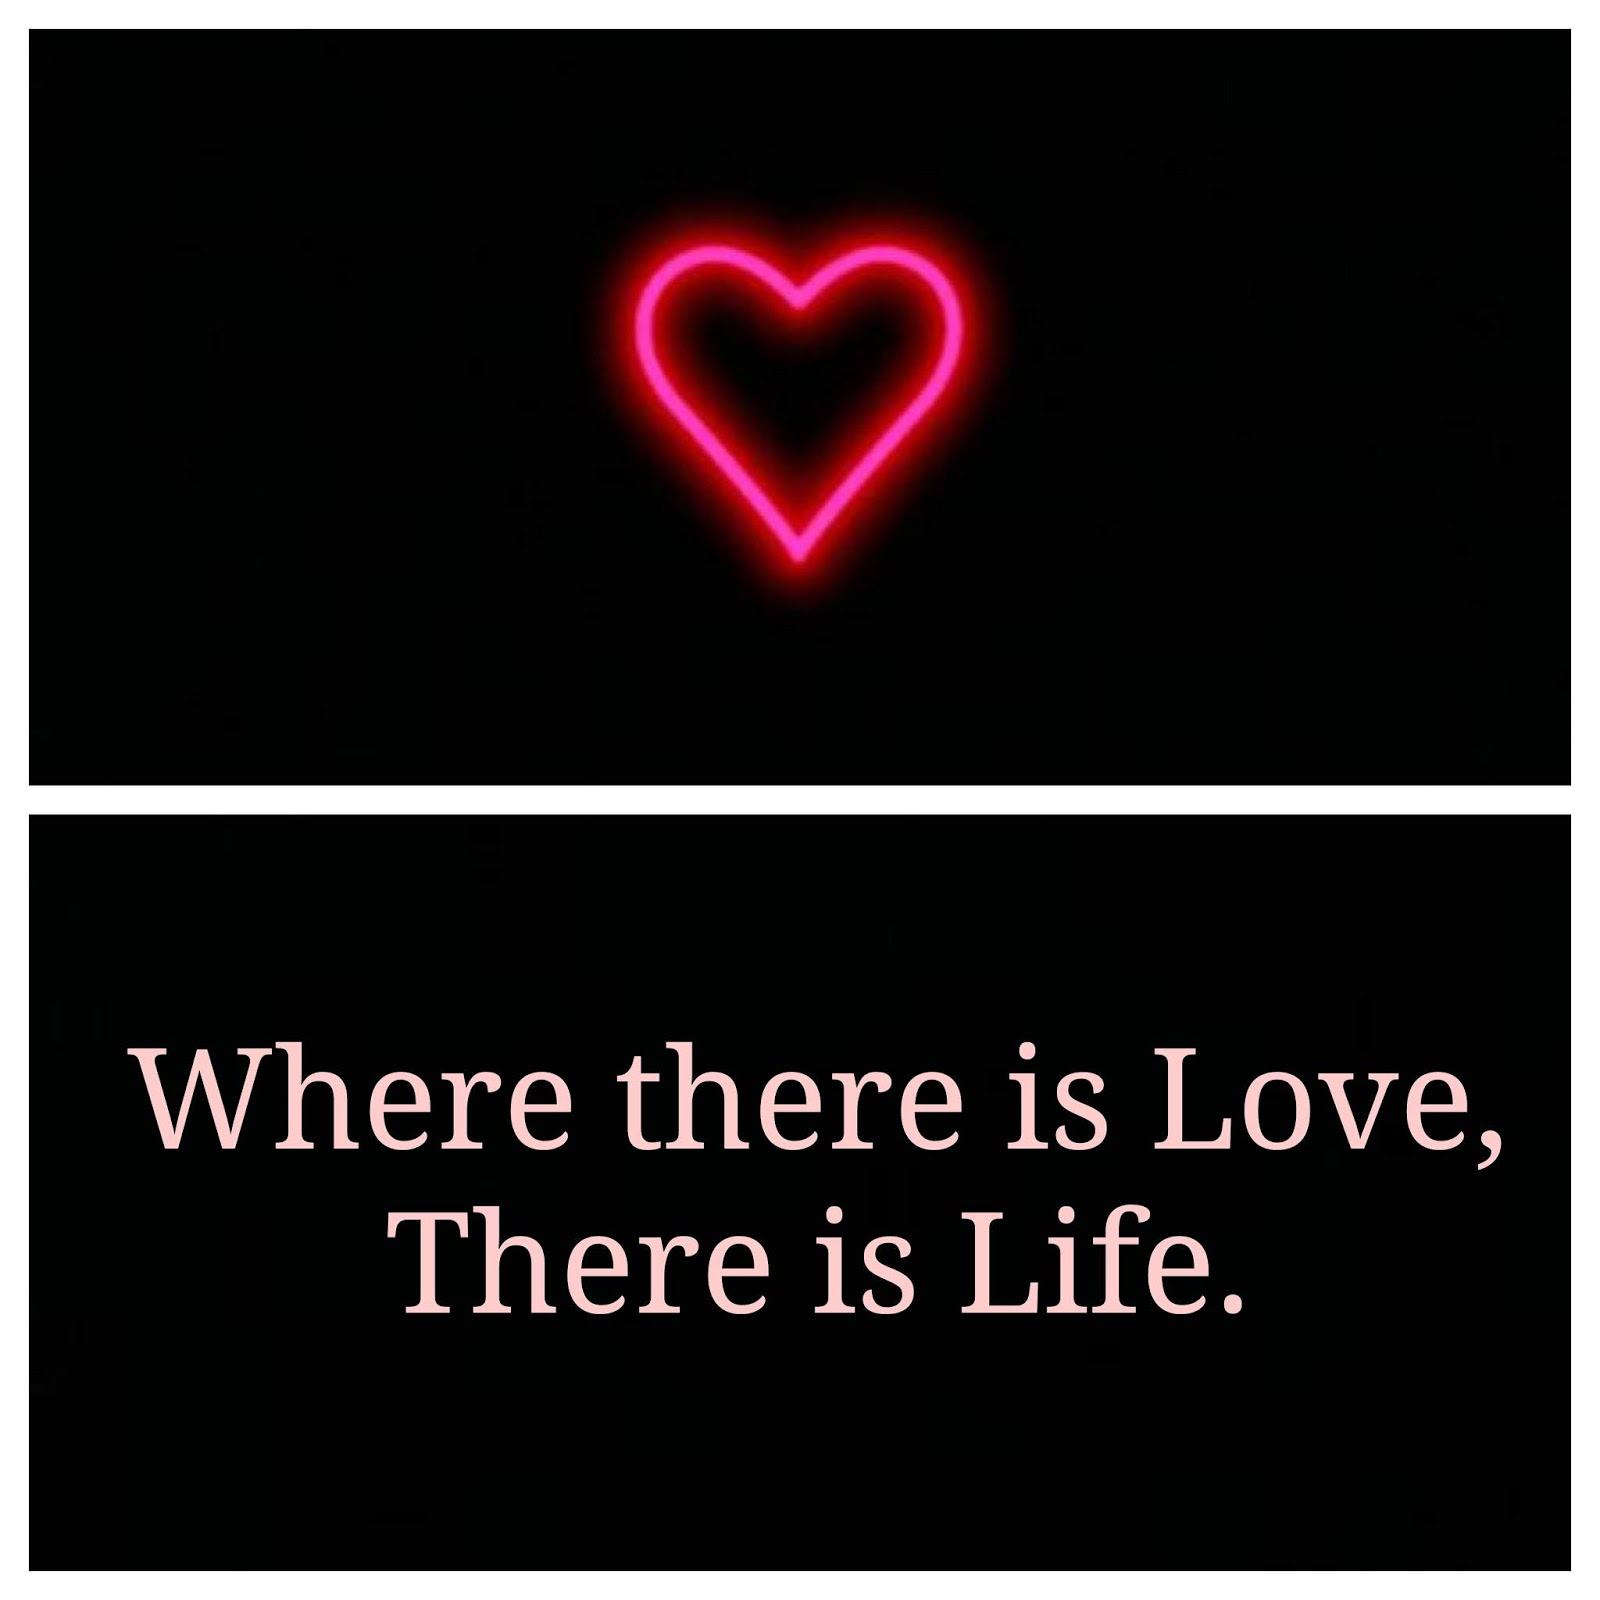 Love quotes wallpapers ultra hd ashueffects %